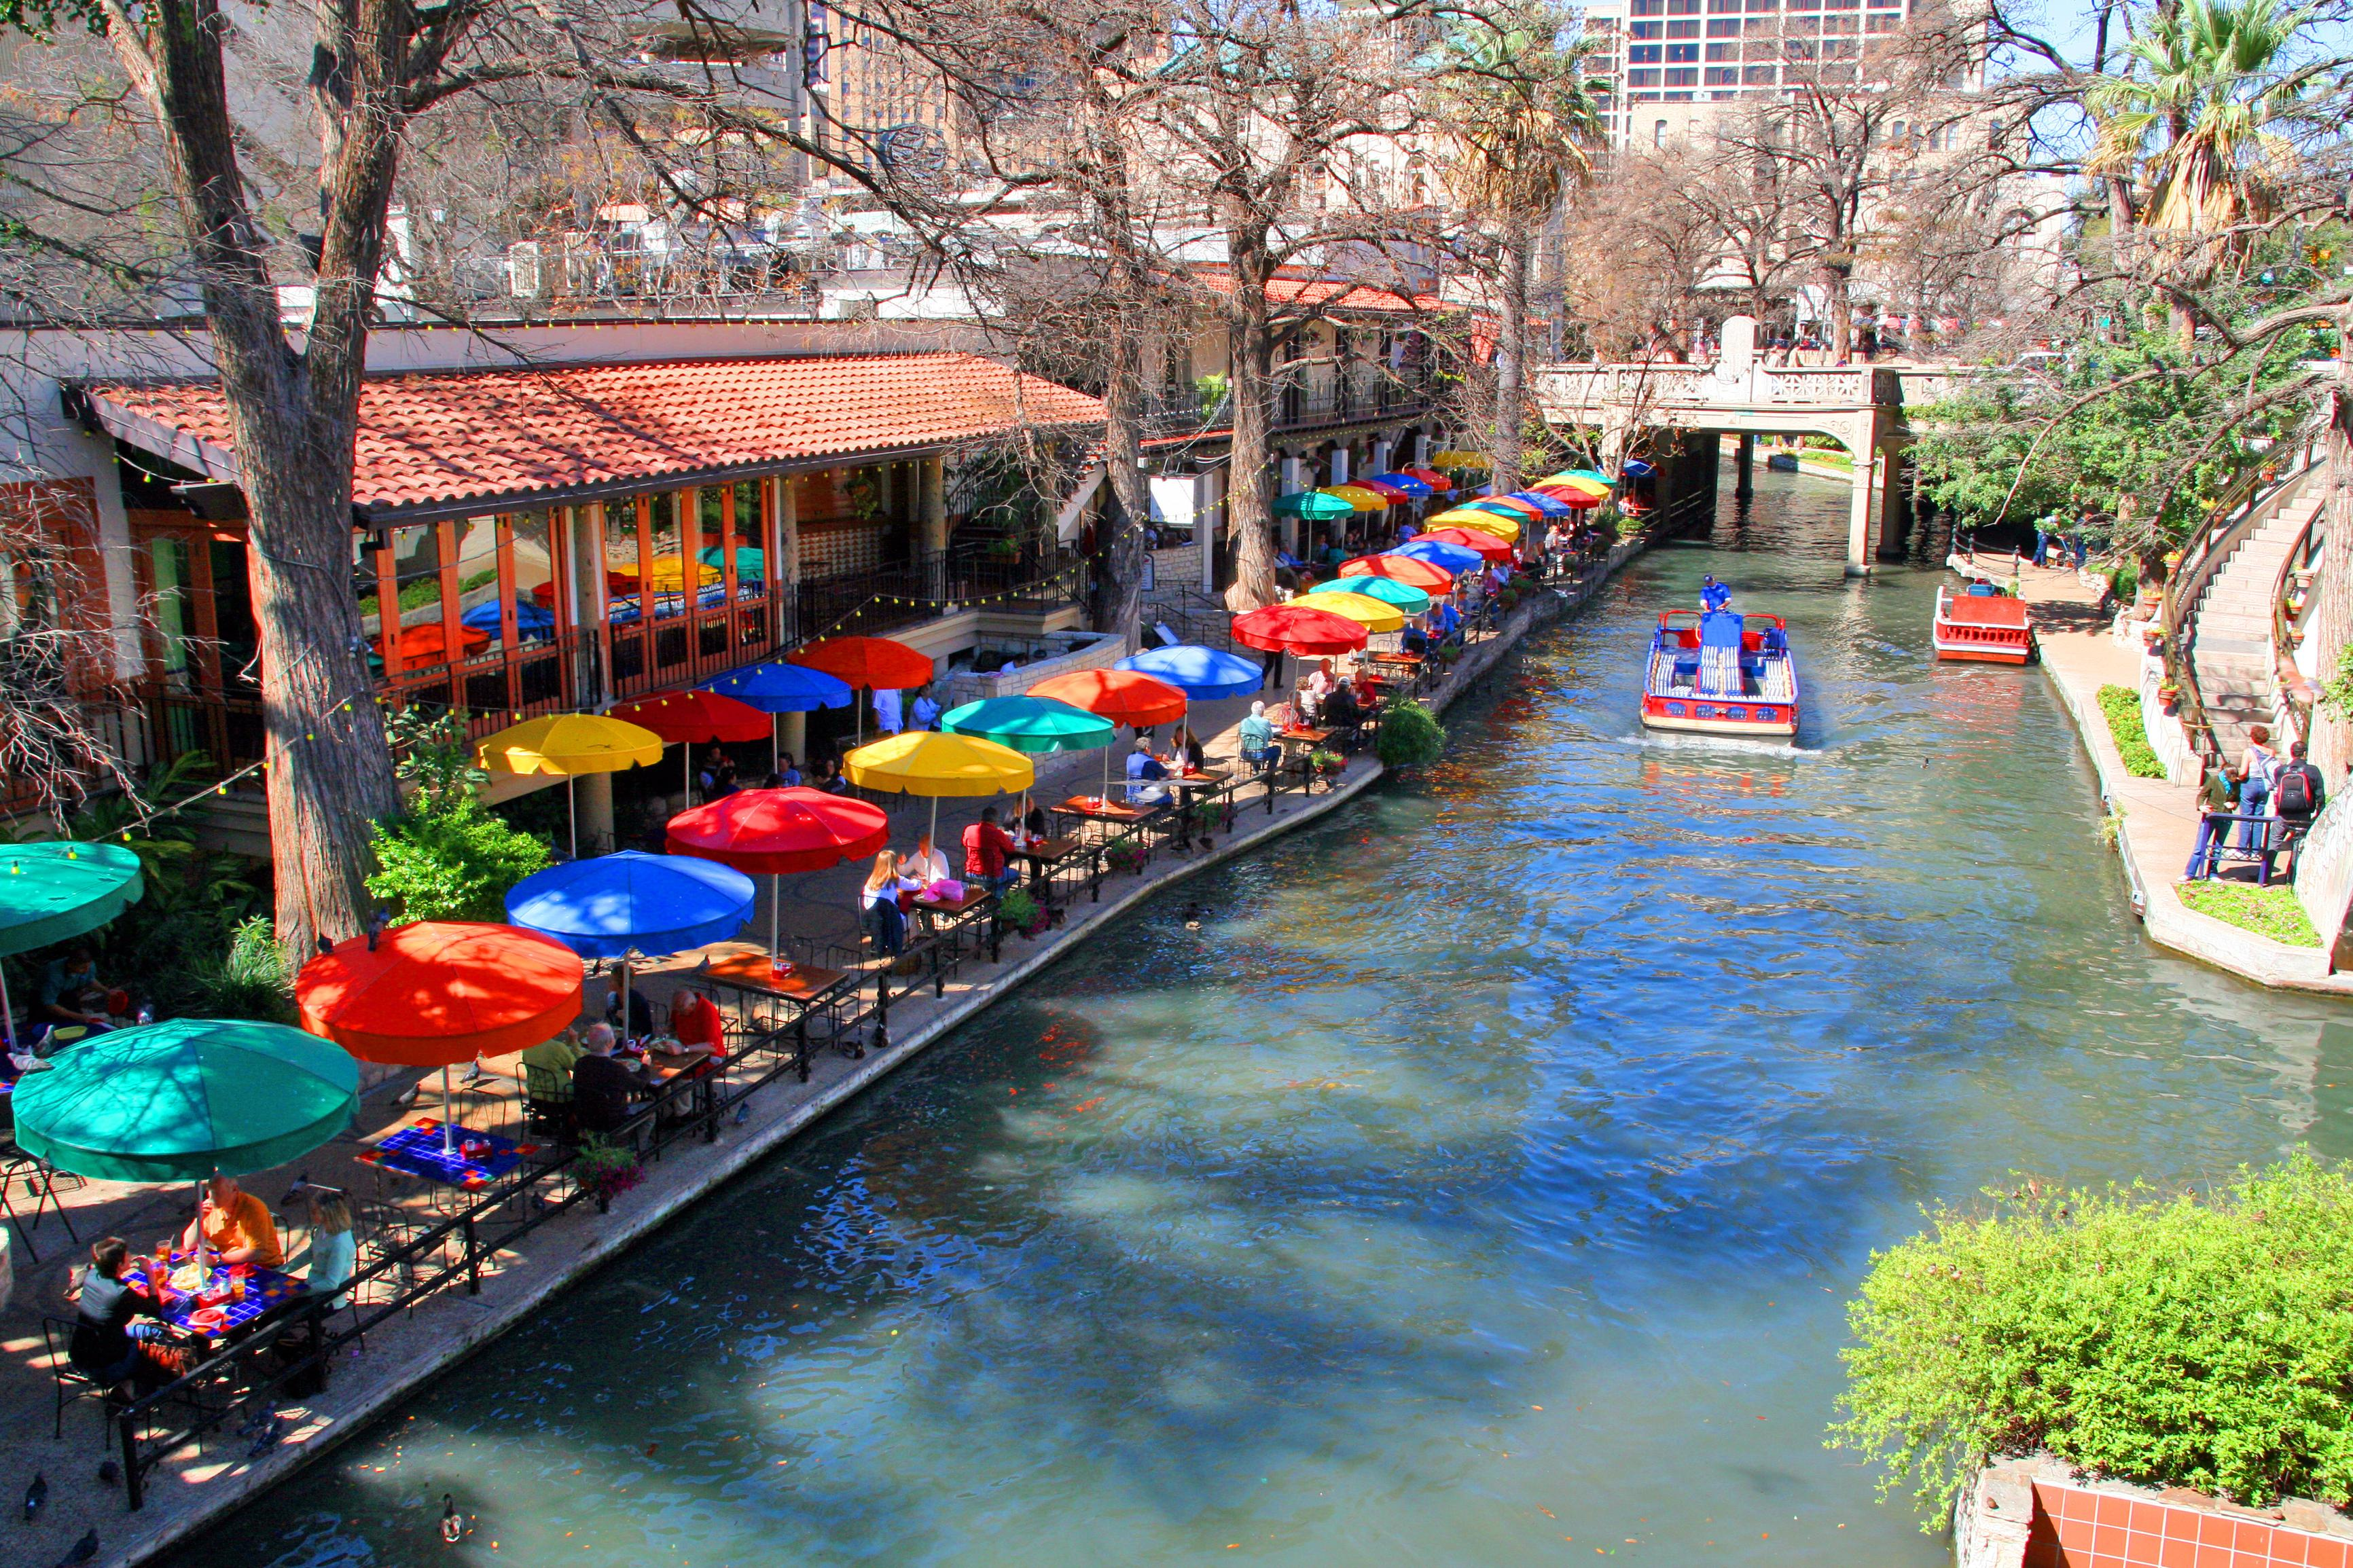 Knights Inn San Antonio Riverwalk